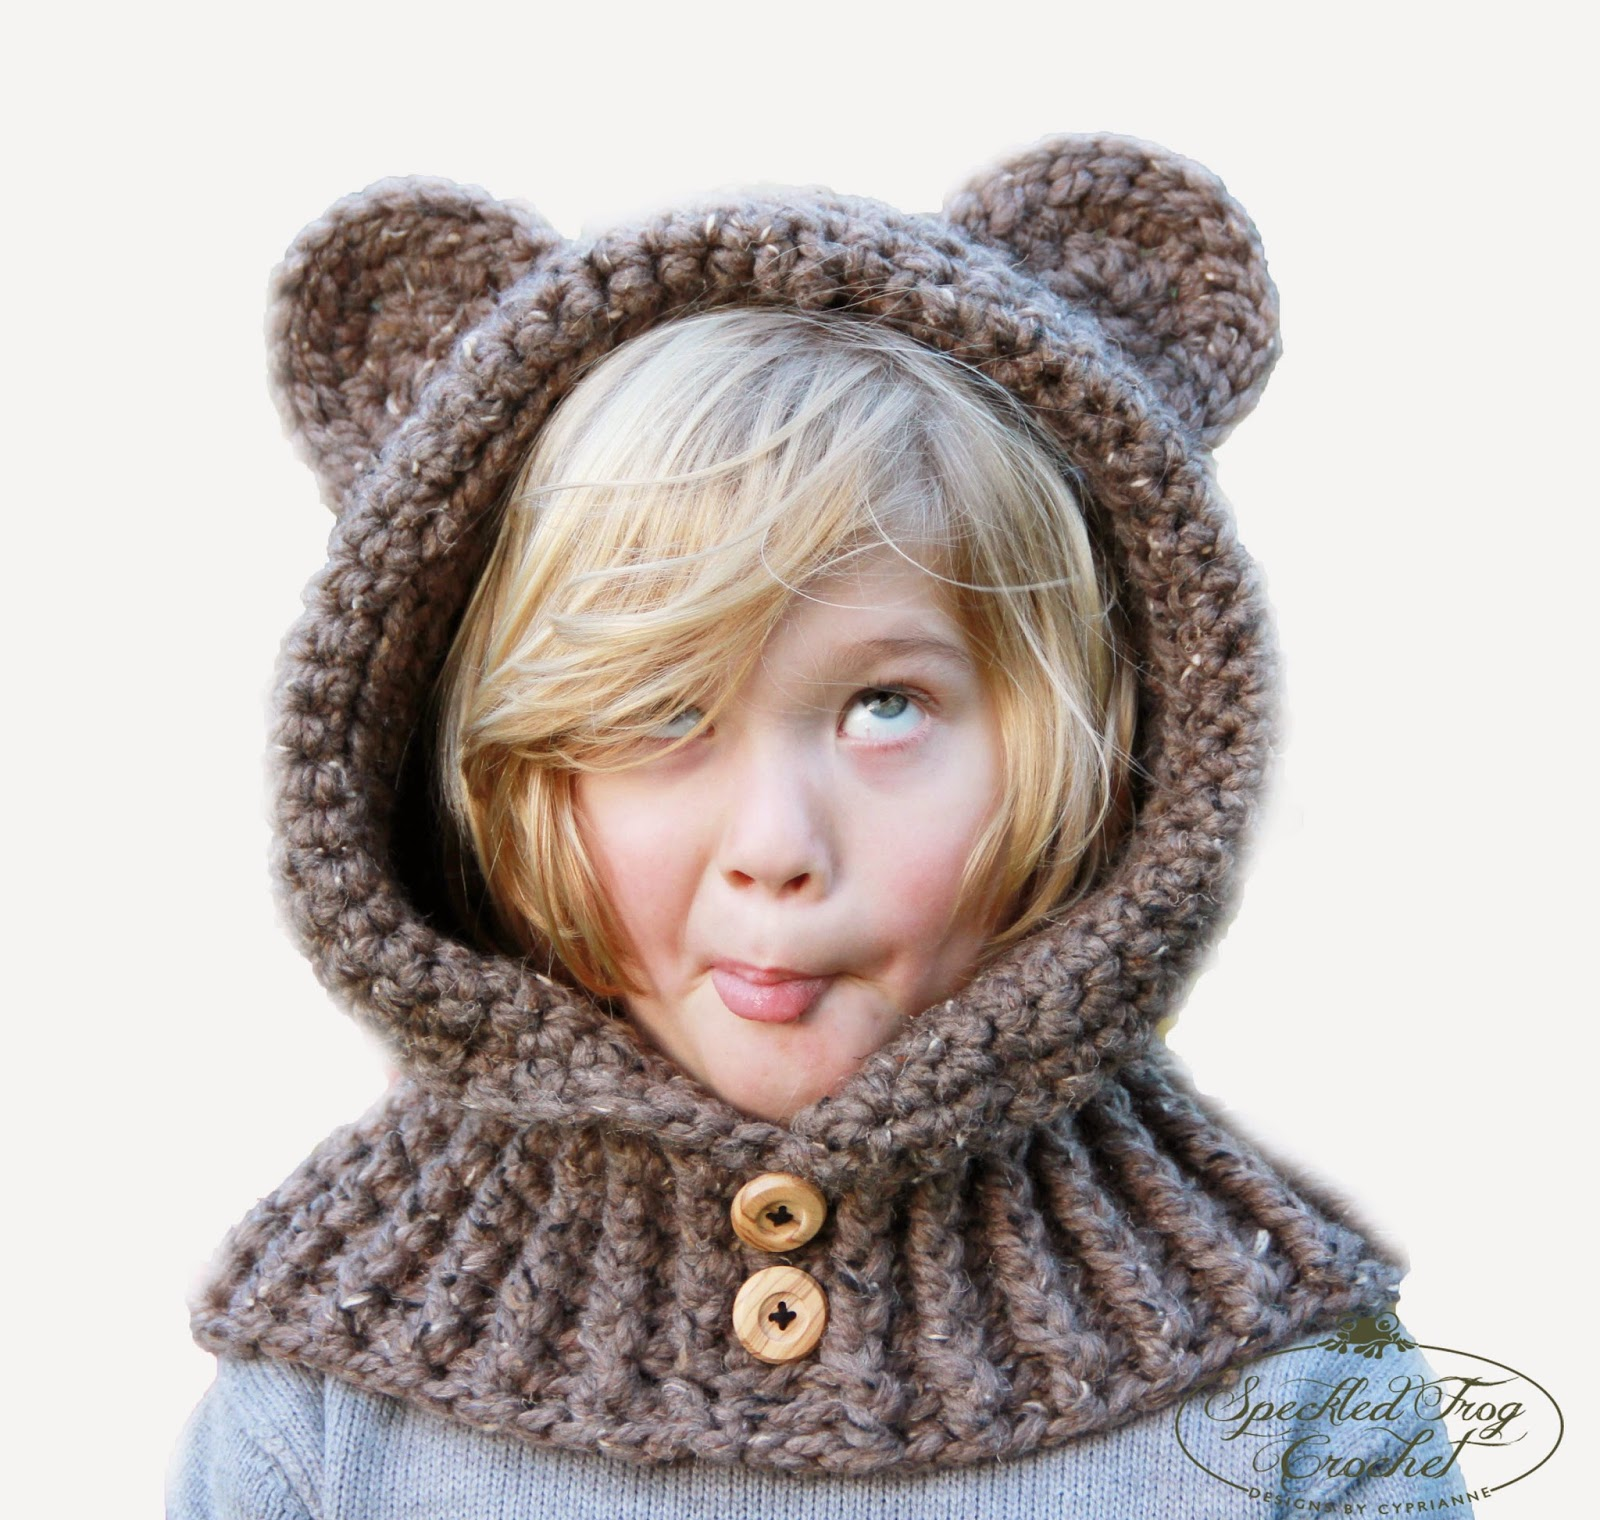 Knitting Pattern Bear Hoodie : Pretty Darn Adorable Crochet: CROCHET HOODED BEAR COWL PATTERN